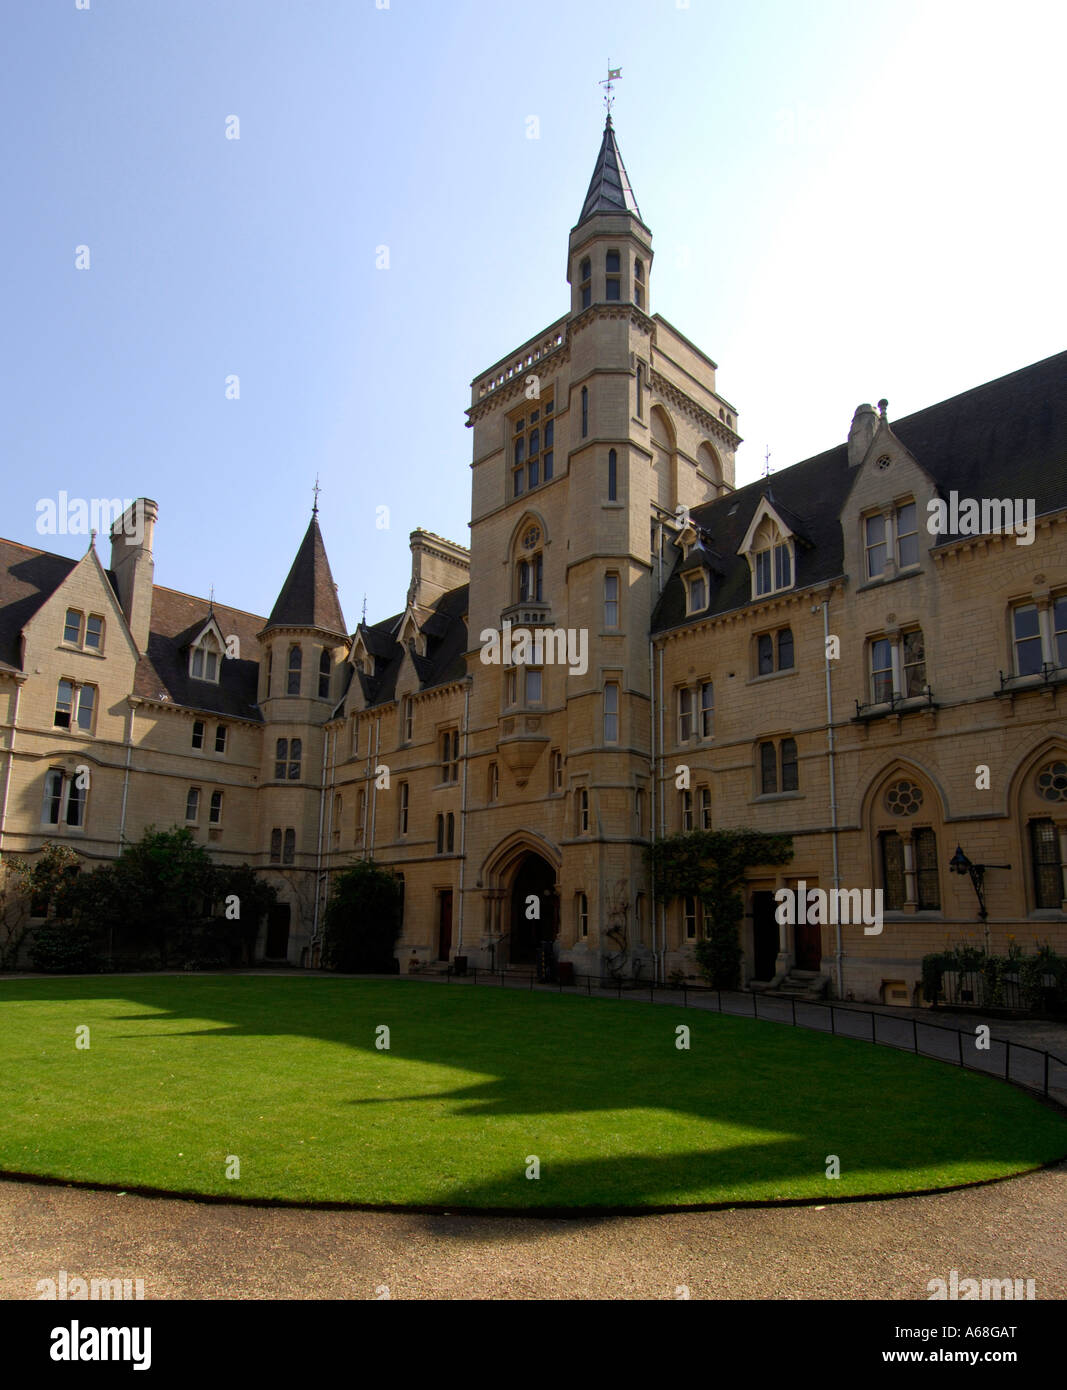 Balliol College Front Quad and Gate Tower - Stock Image